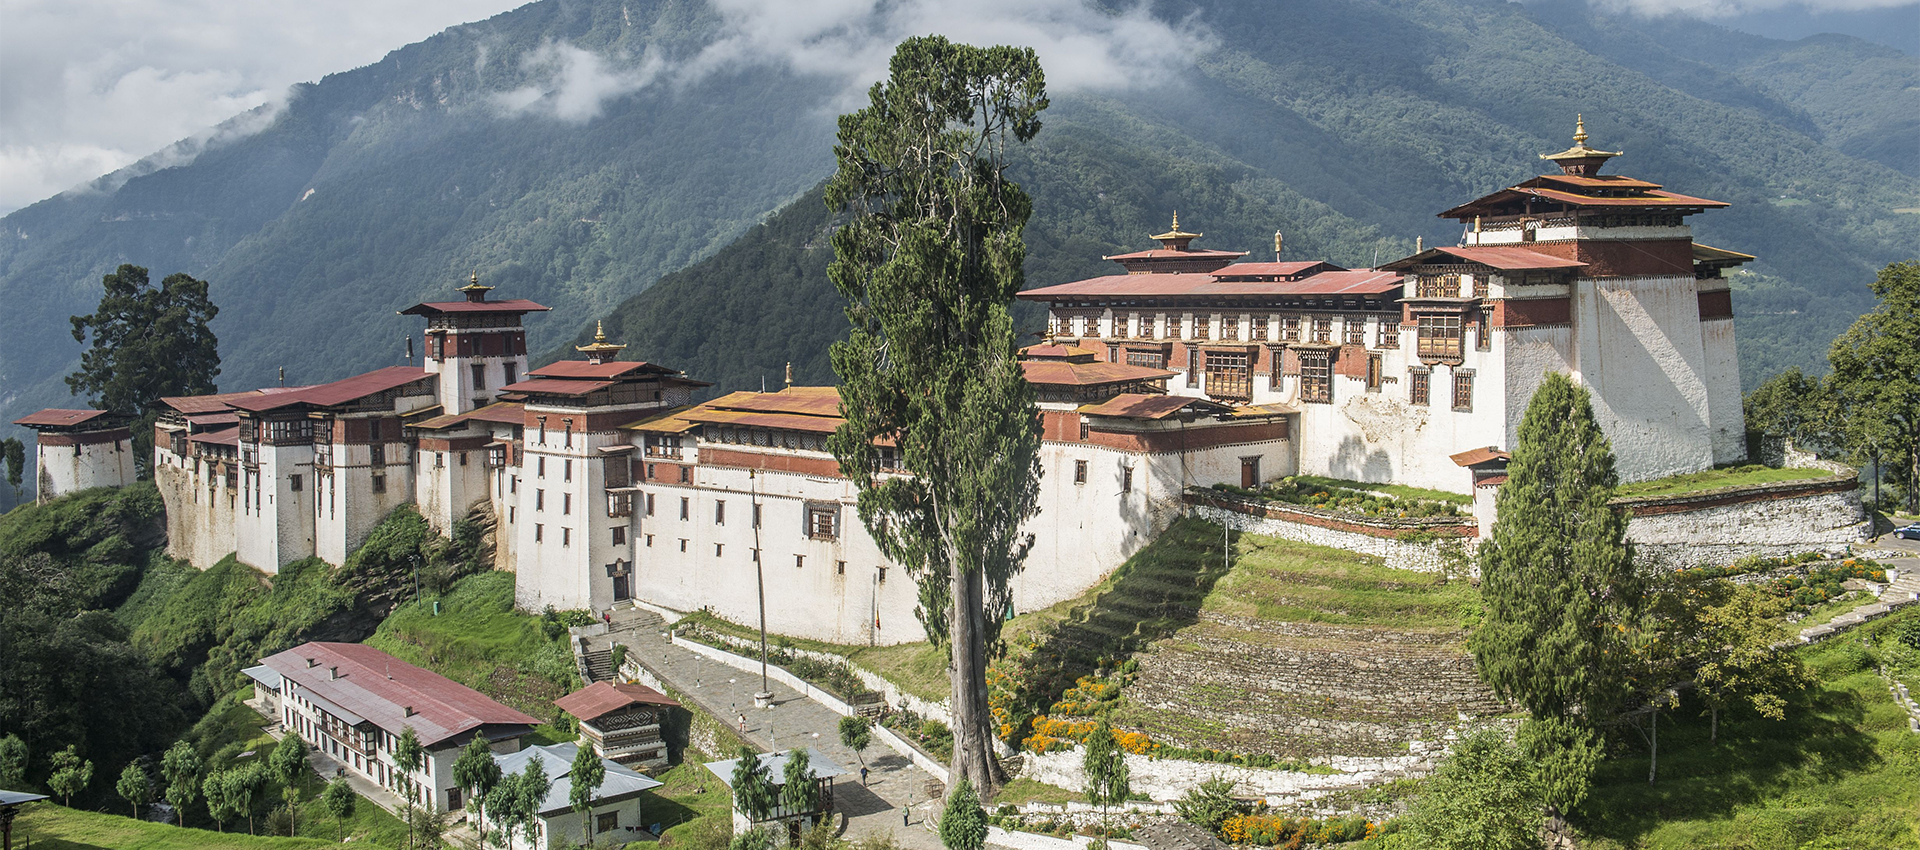 Bhutan: Land of the Thunder Dragon